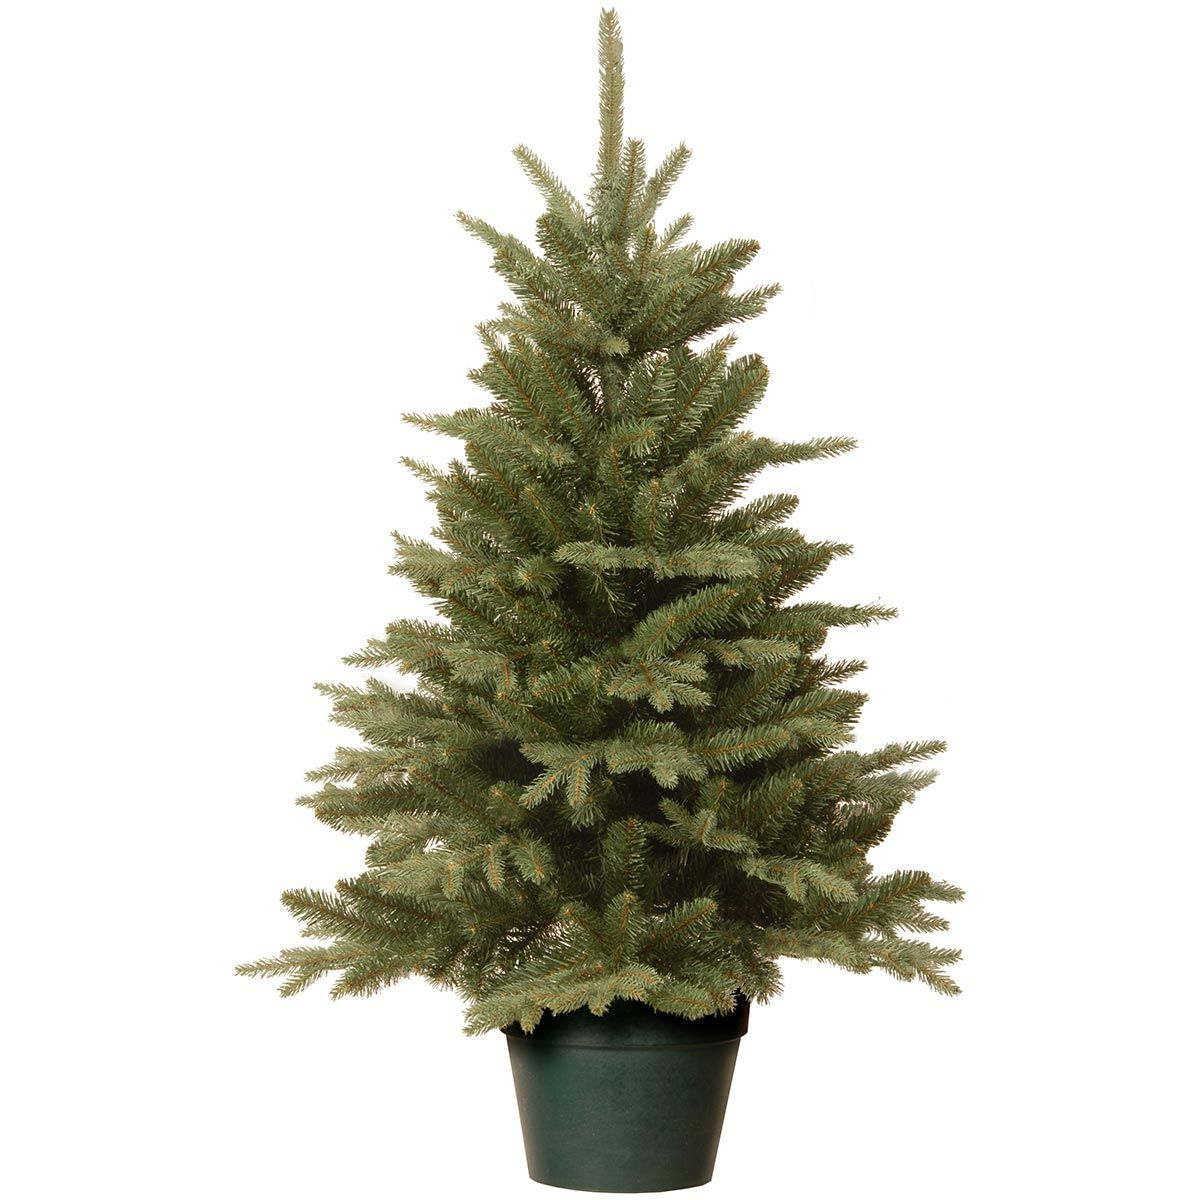 4ft Everyday Collections Potted Feel Real Artificial Christmas Tree